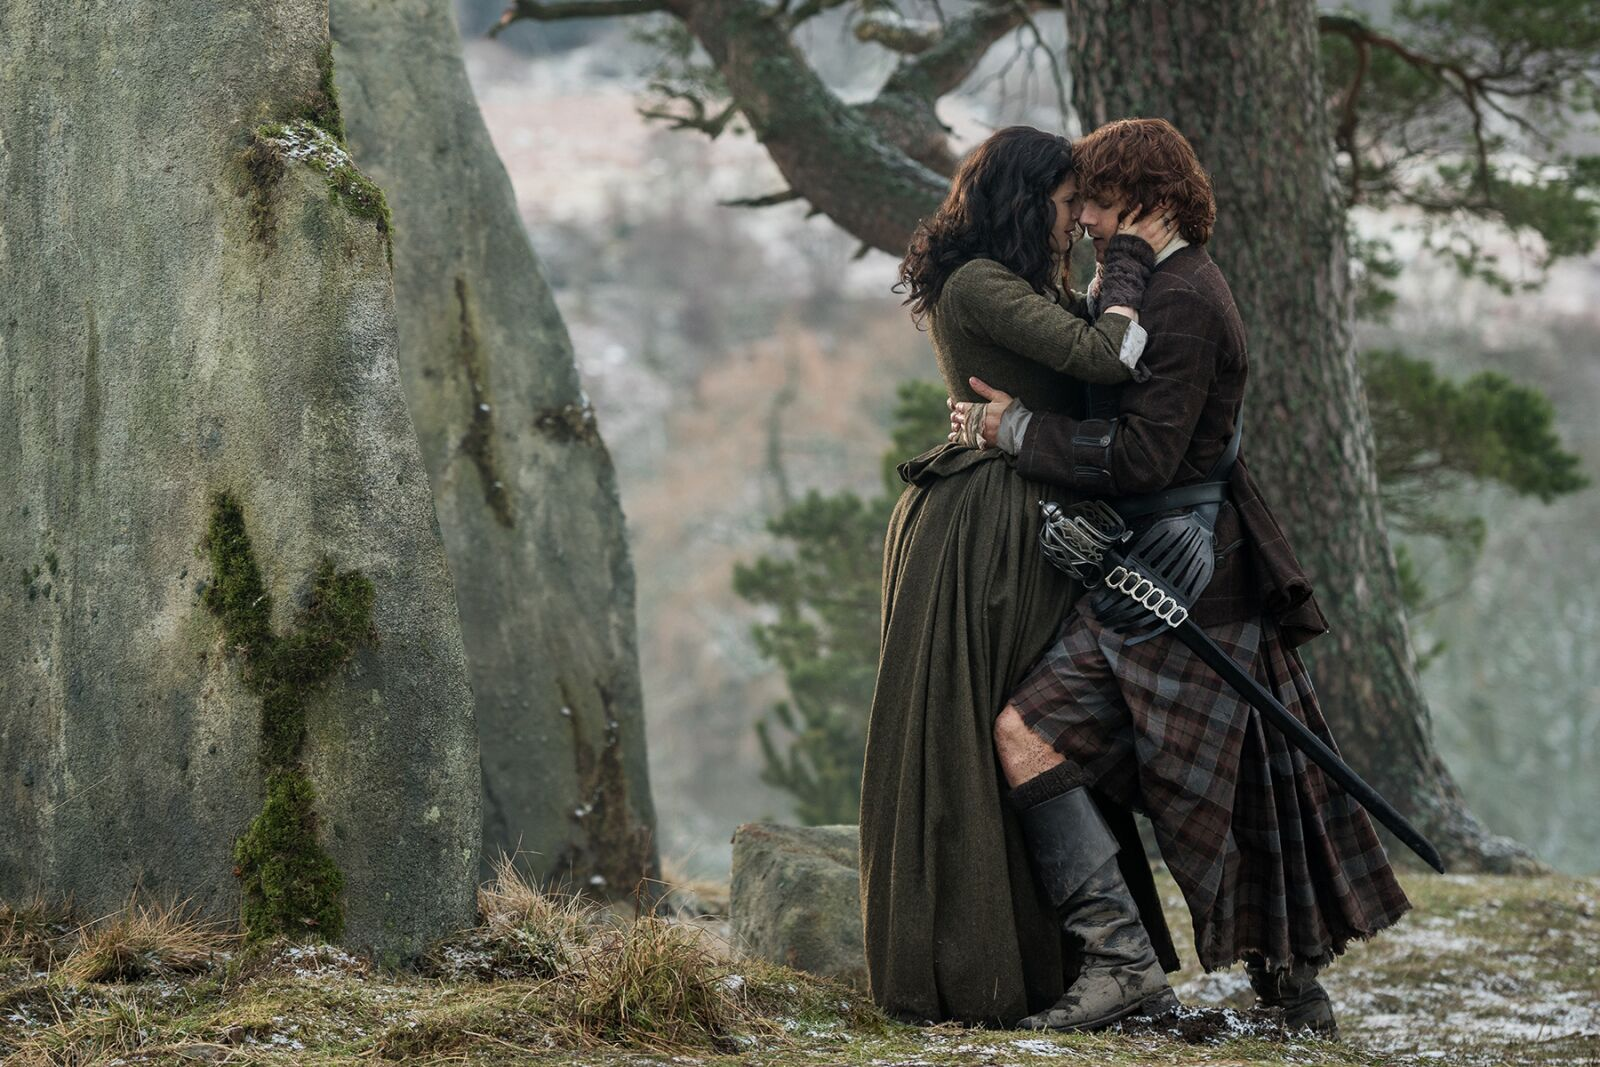 Outlander author Diana Gabaldon writing an episode for season 5